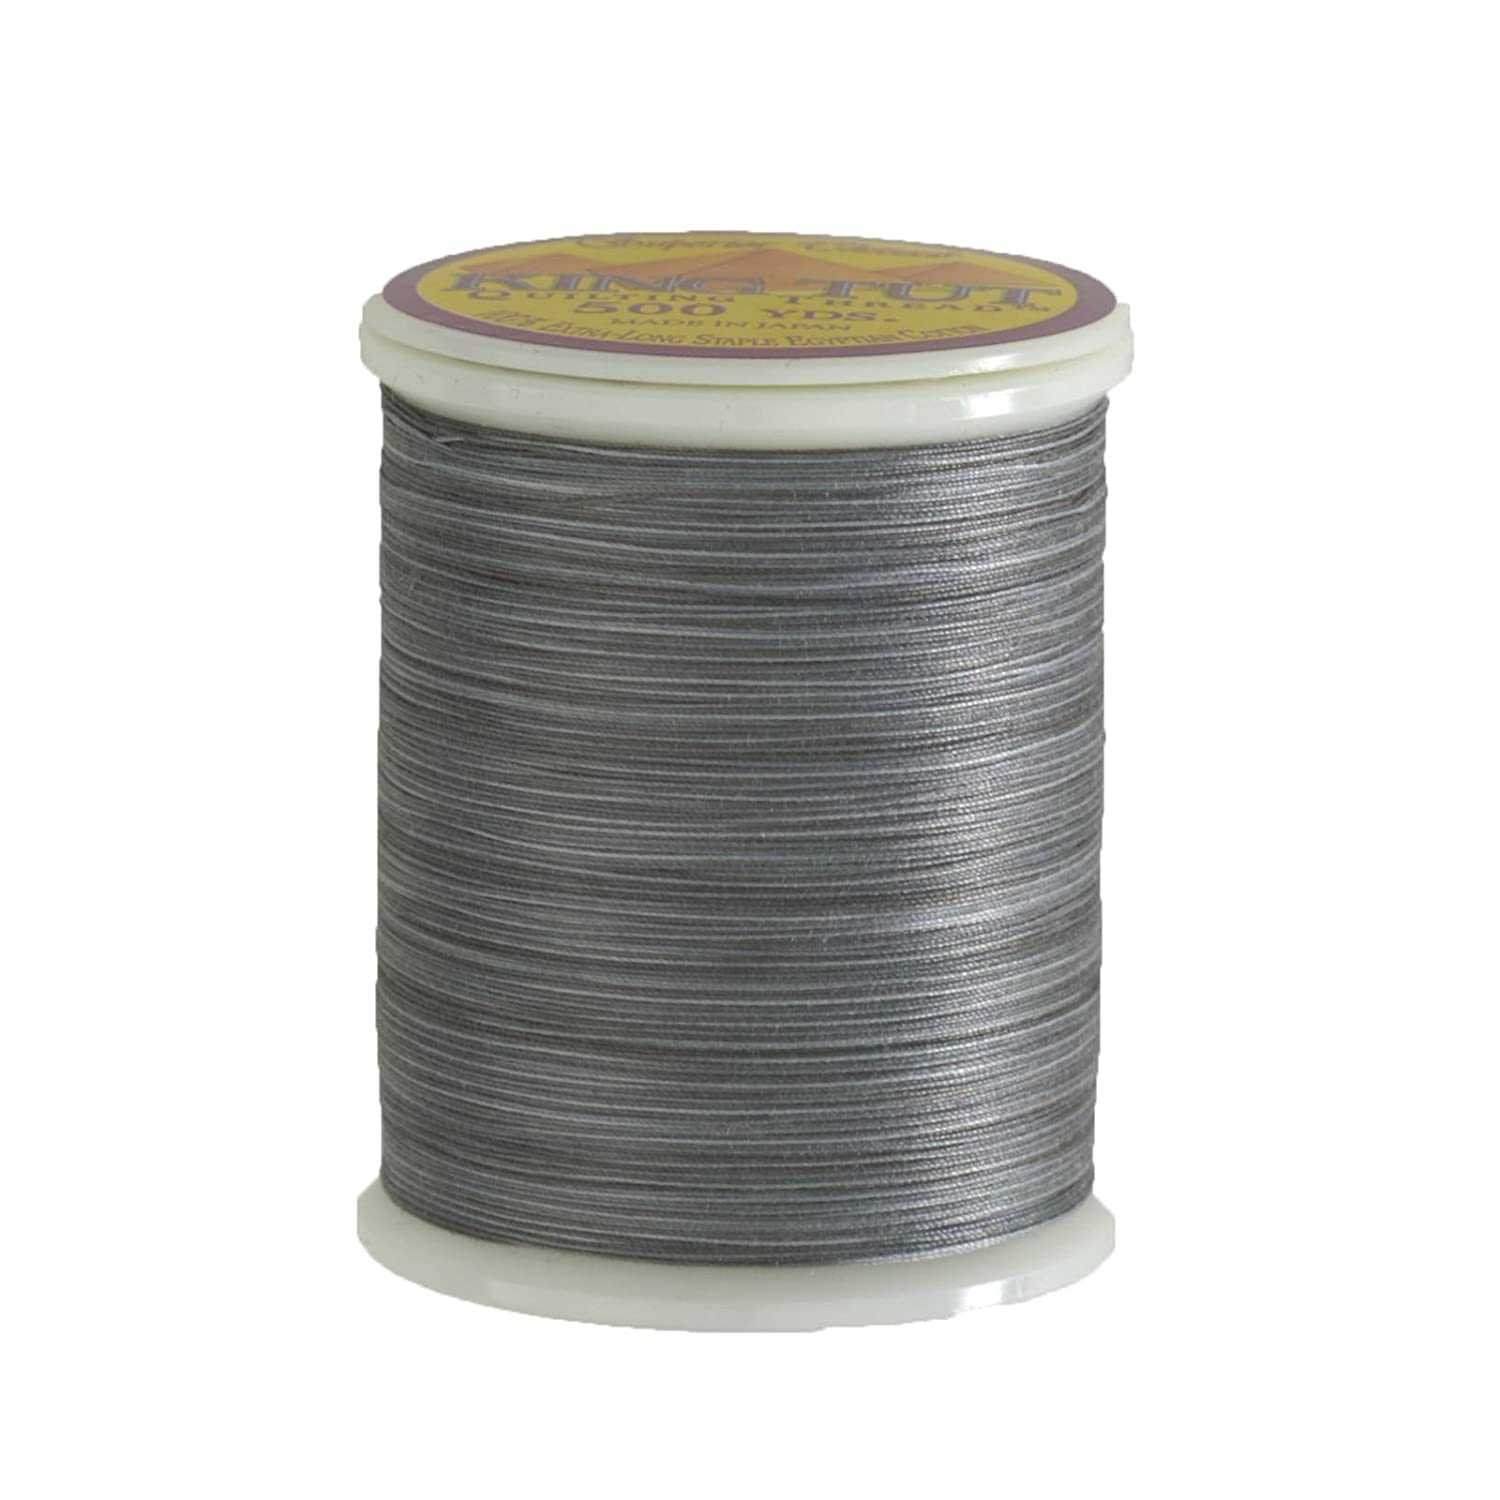 Superior Thread King TUT Cotton Quilting 3-ply 40wt 500yds Pumice Fabric.com 0288679